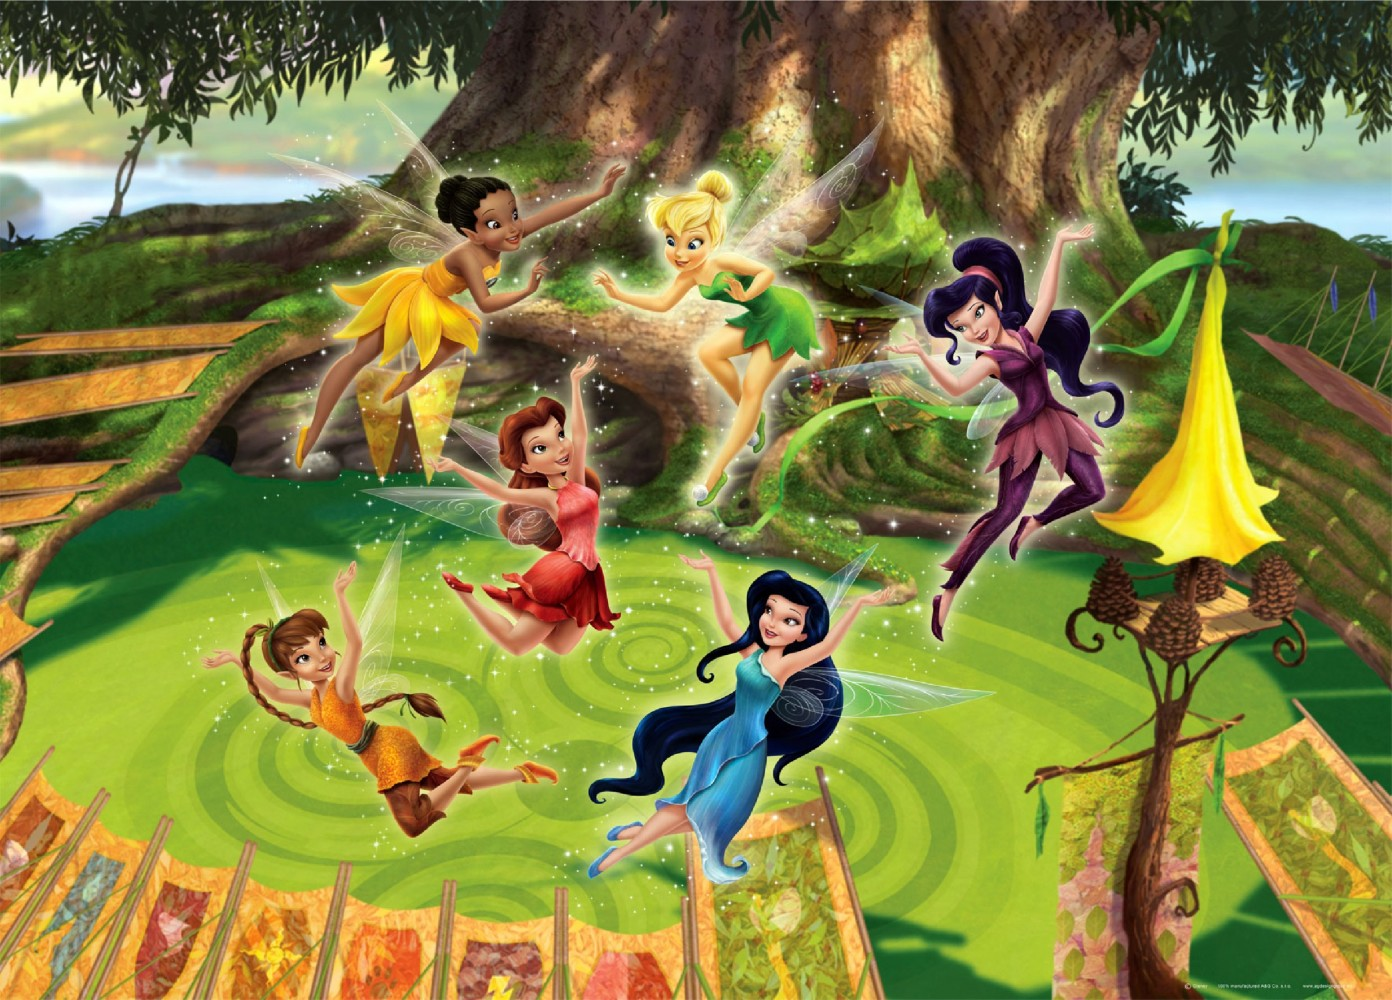 xxl poster wall mural wallpaper disney tinkerbell feen. Black Bedroom Furniture Sets. Home Design Ideas